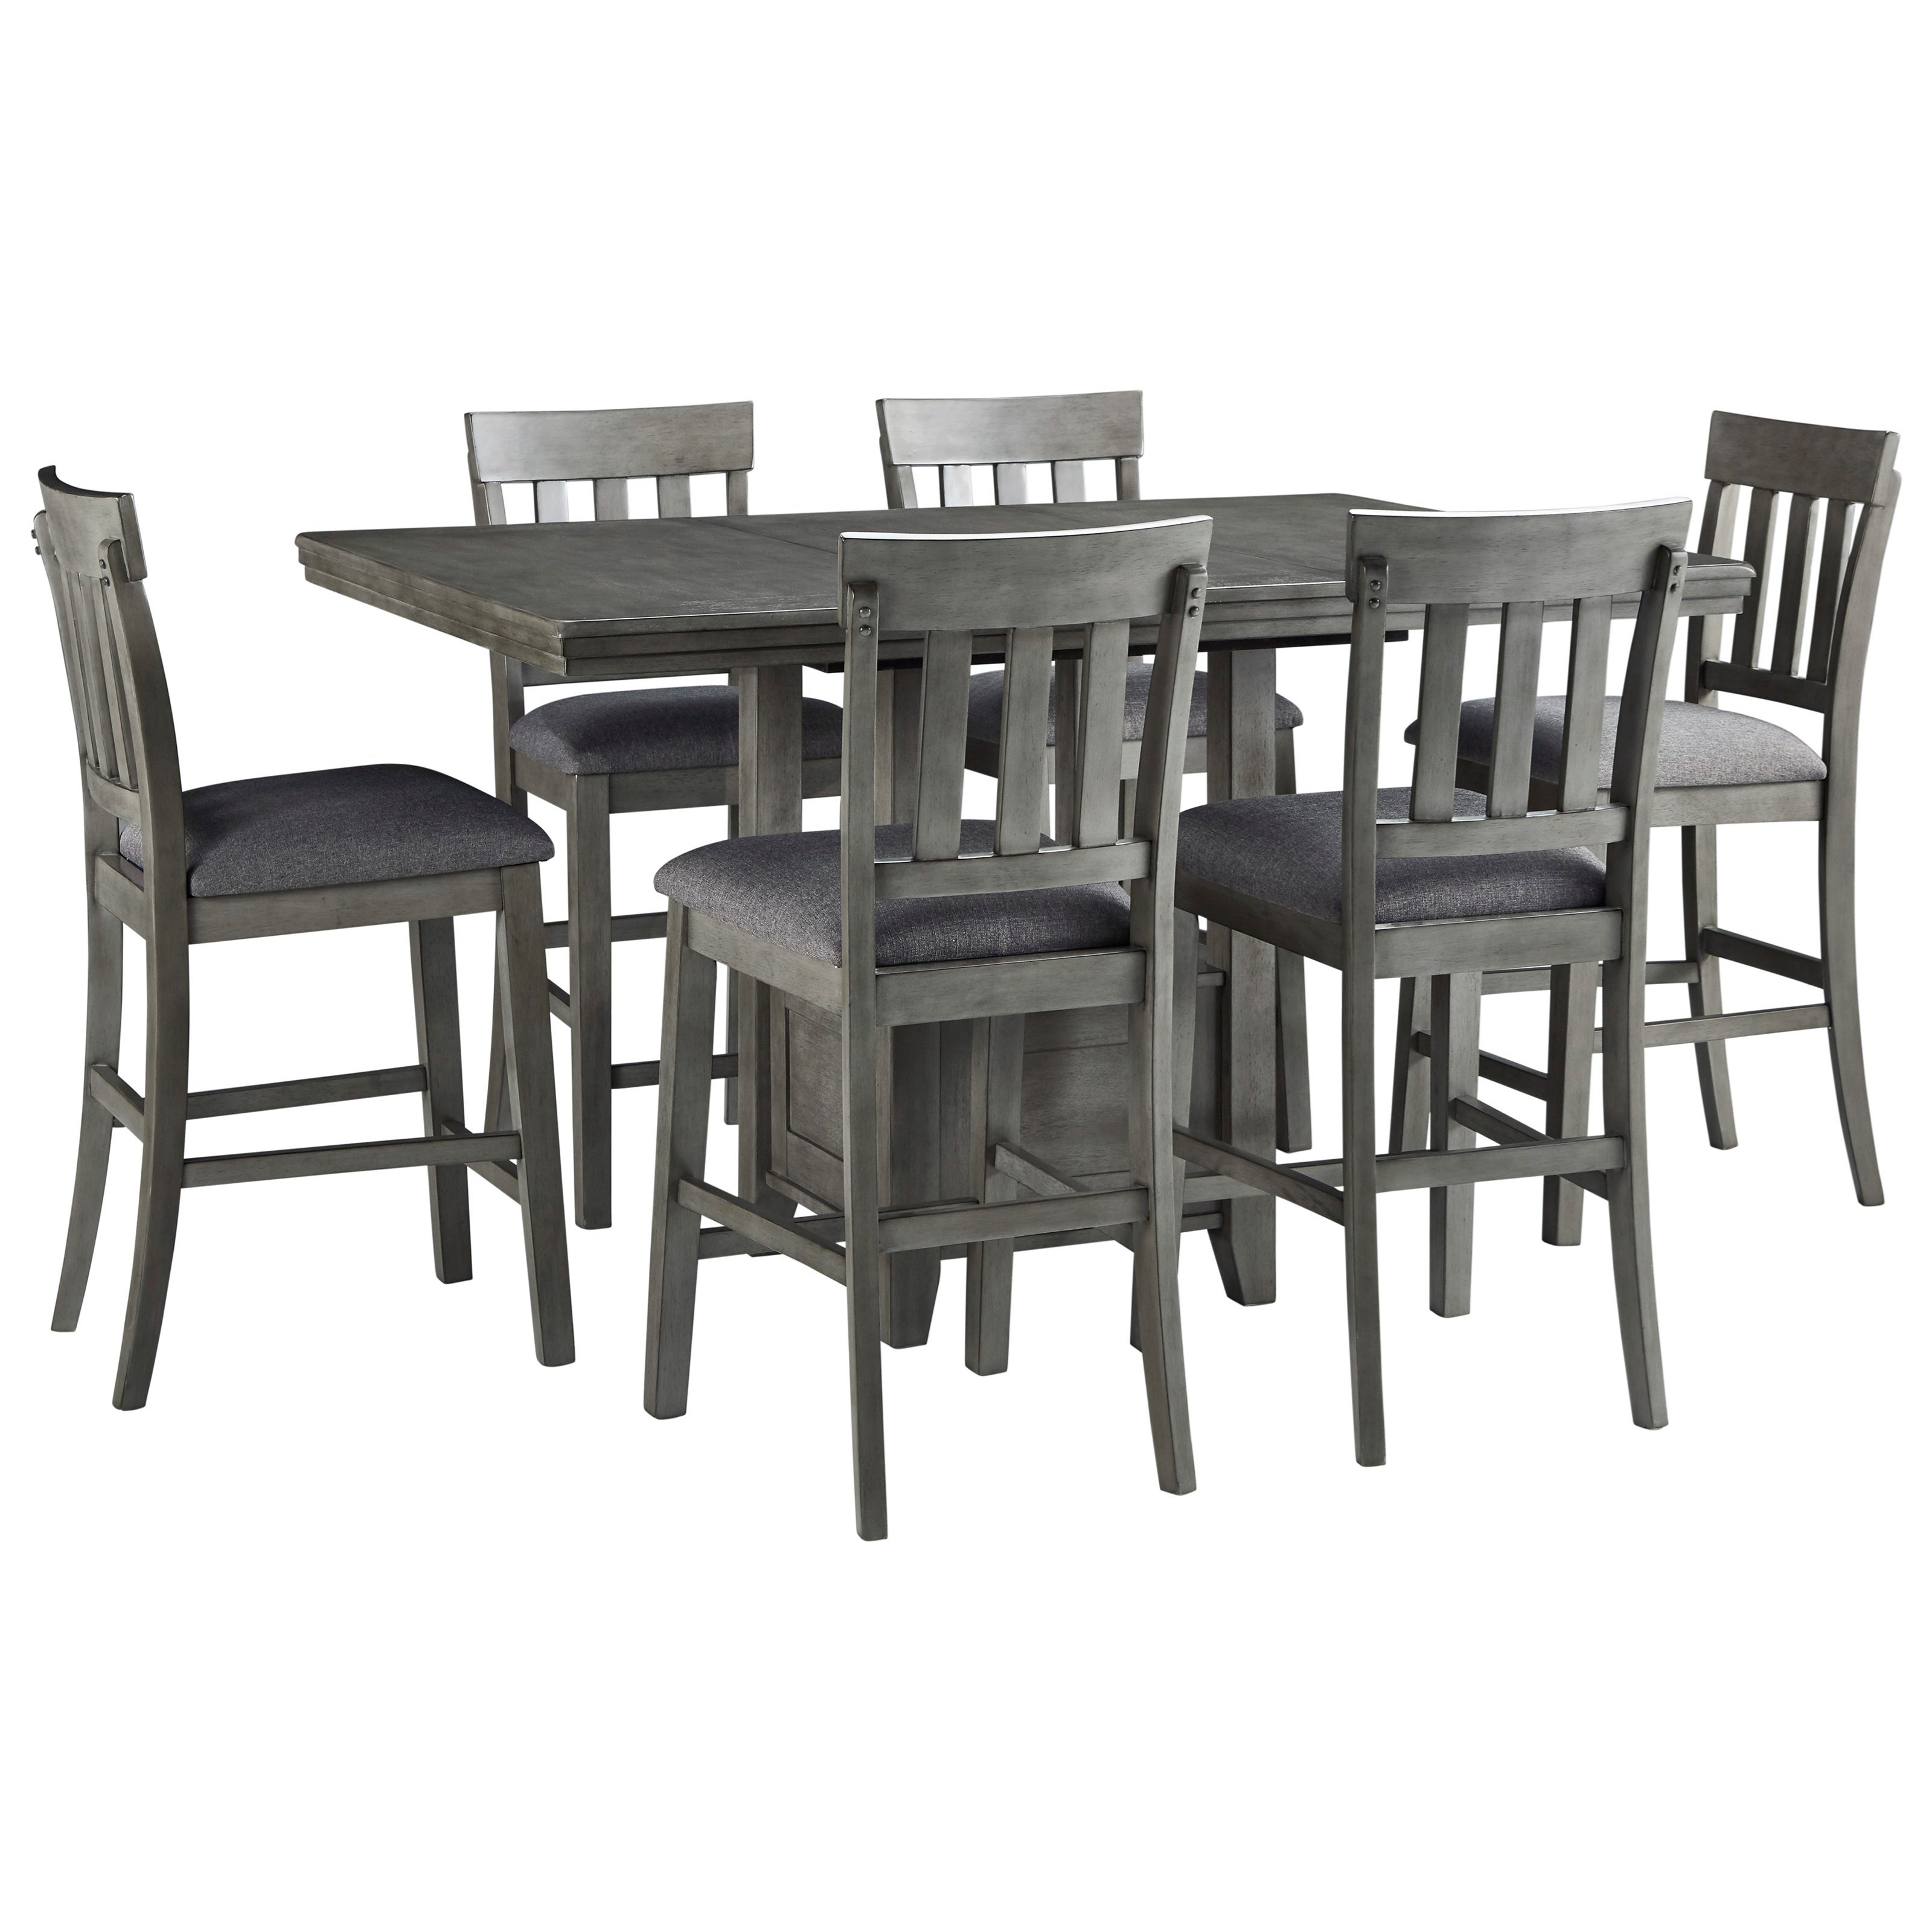 Hallanden 7-Piece Counter Height Dining Set by Signature Design by Ashley at Sparks HomeStore